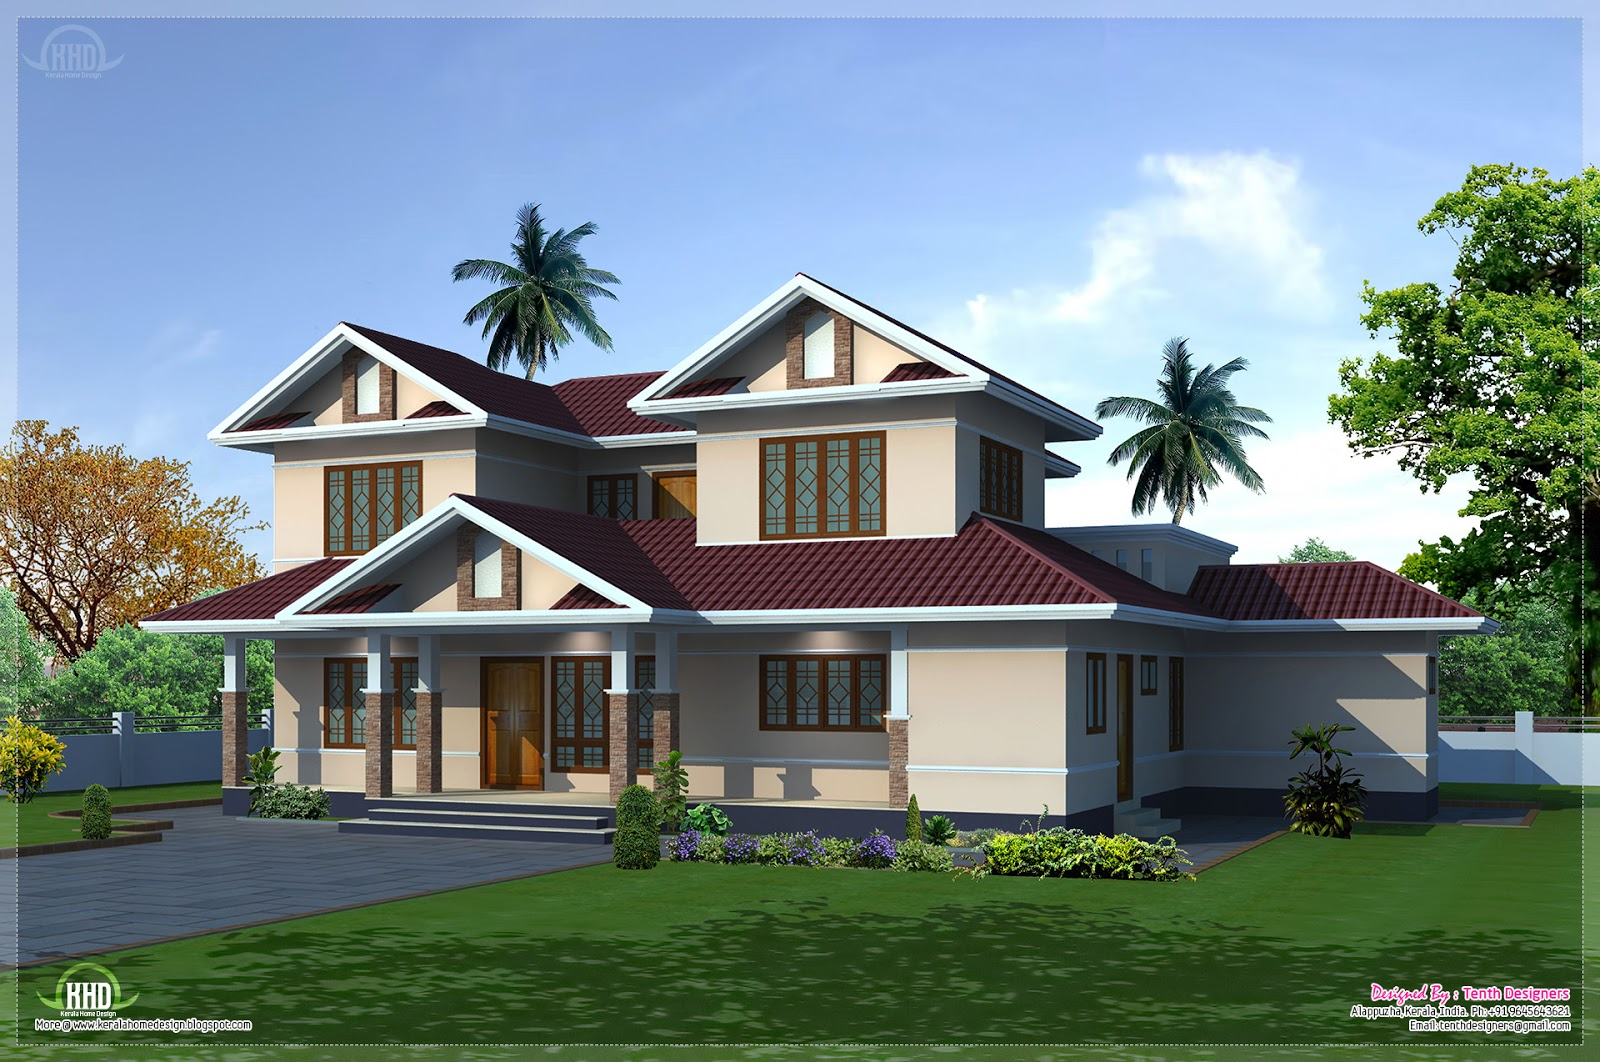 Traditional Home Designs Exterior Traditional House Plans Exterior House Designs